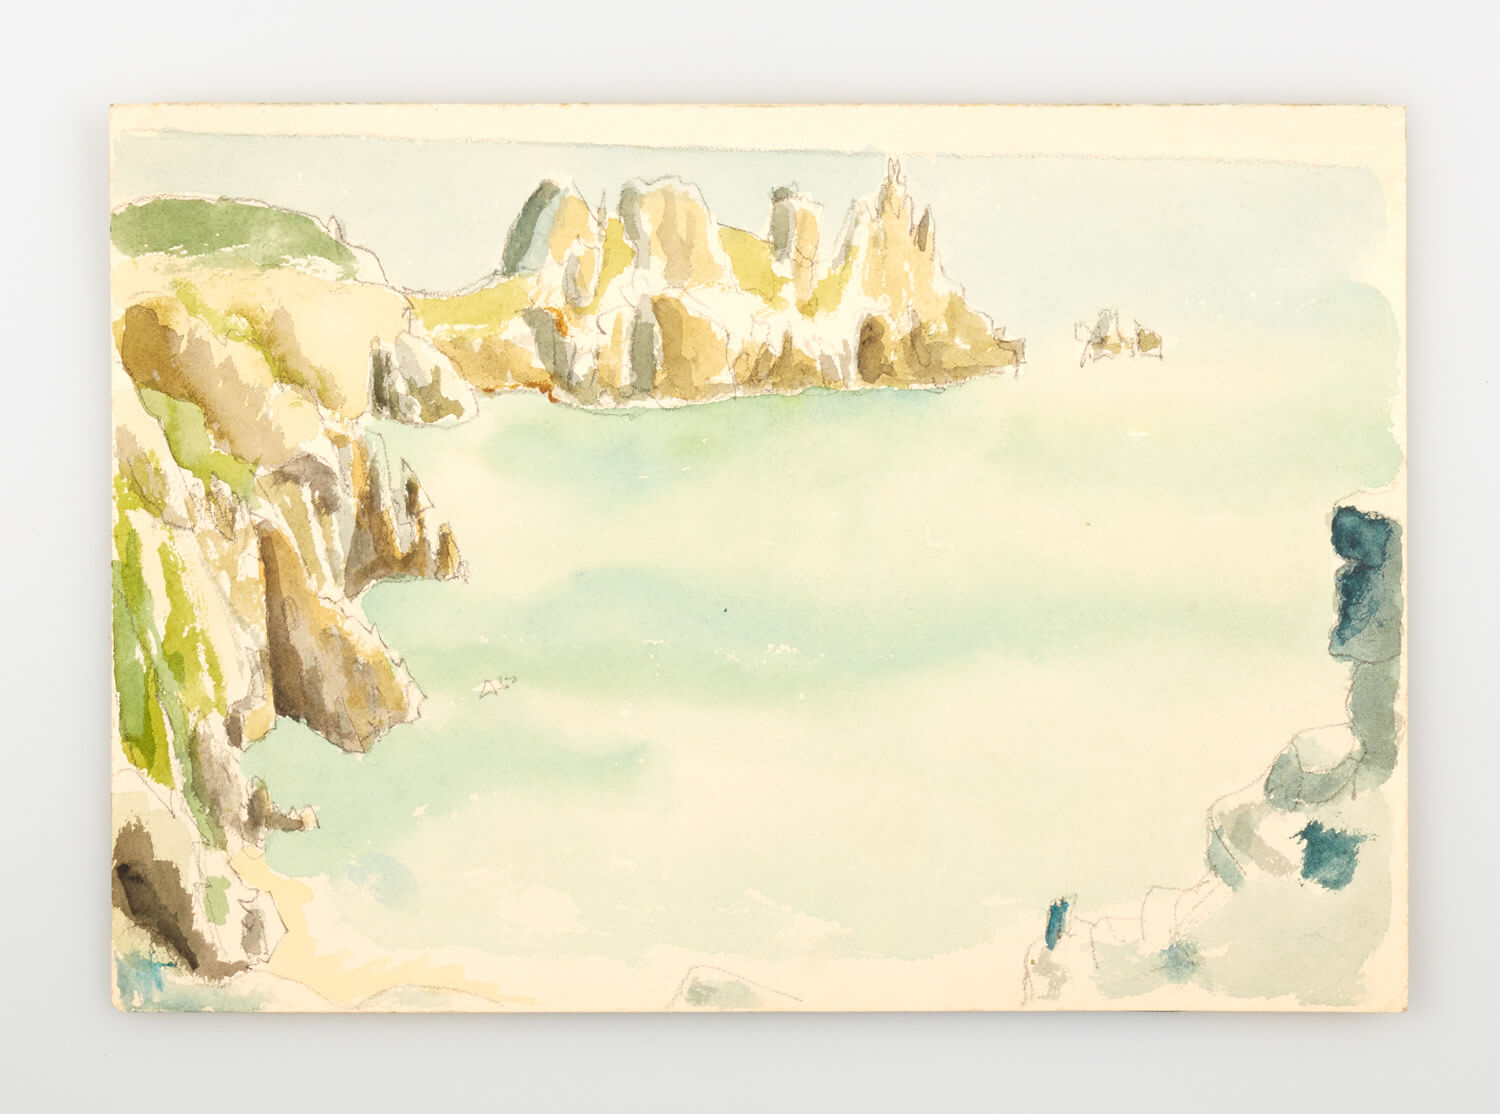 JB257 - Rock and sea, Cornwall sketch - 1946 - 18 x 25.5 cm - Watercolour